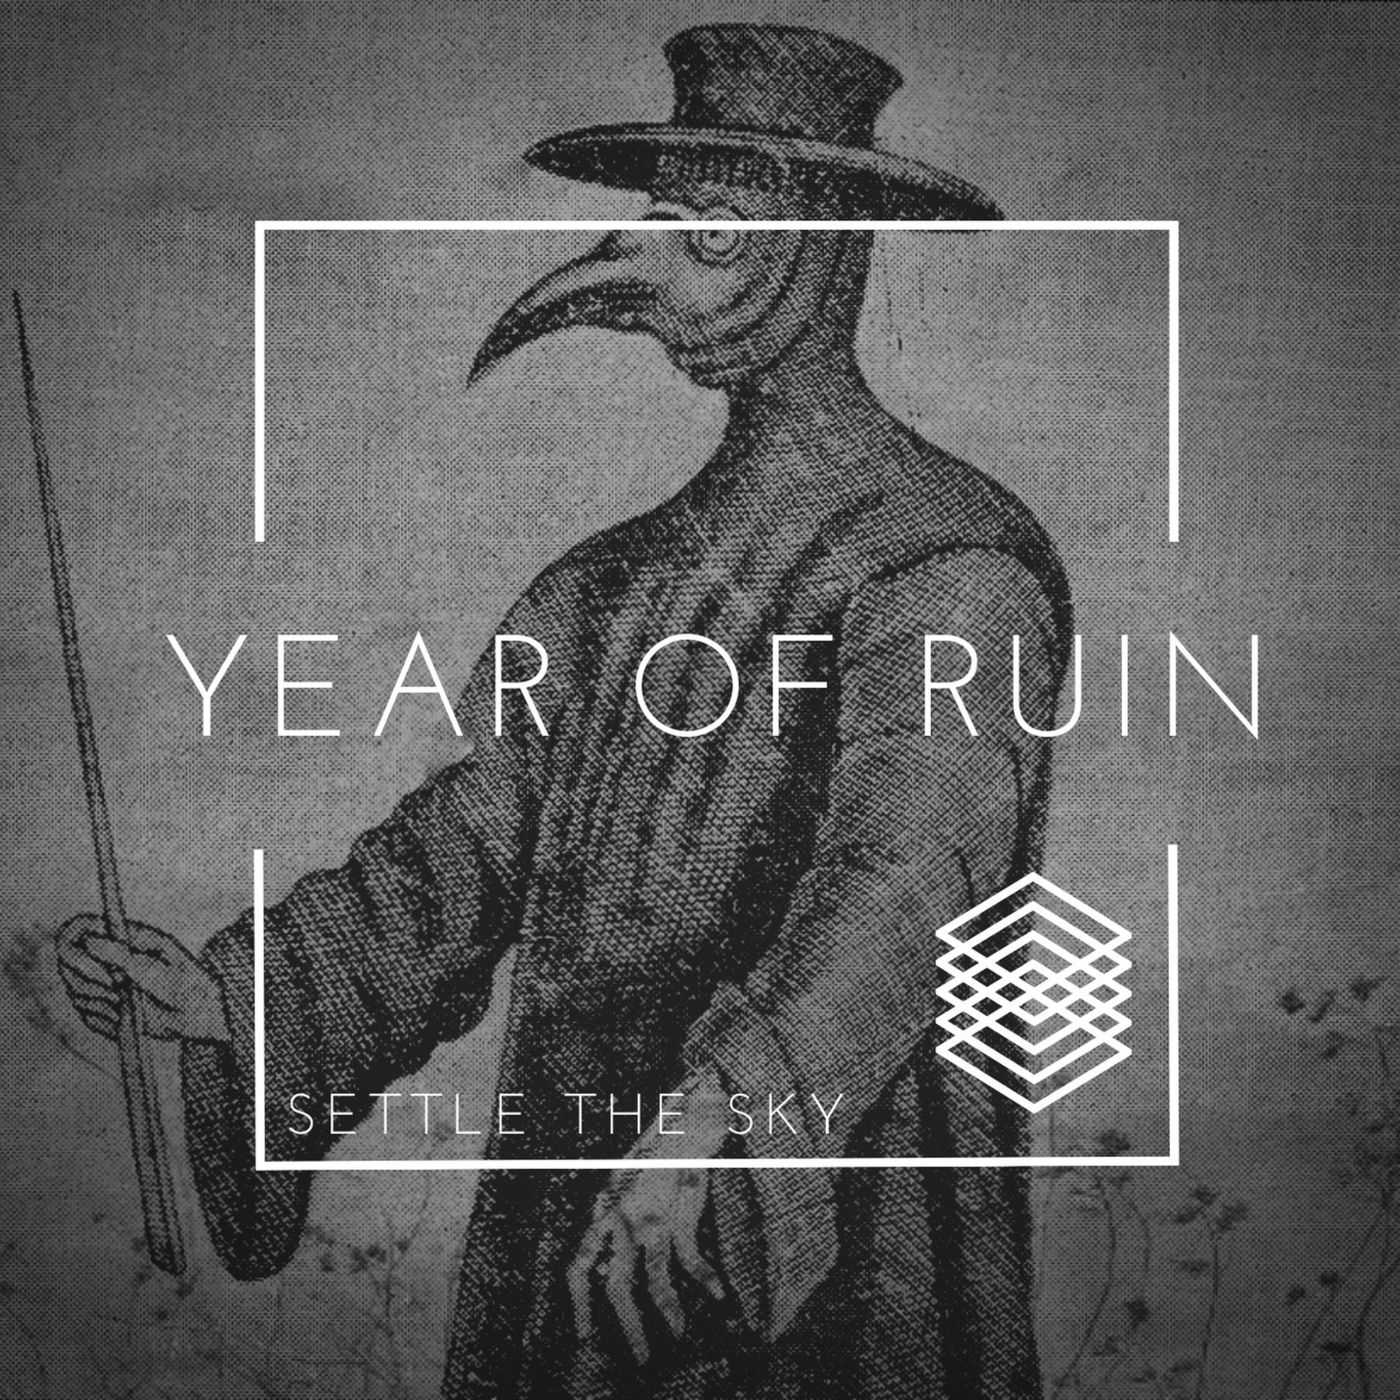 Settle The Sky - Year of Ruin [single] (2020)